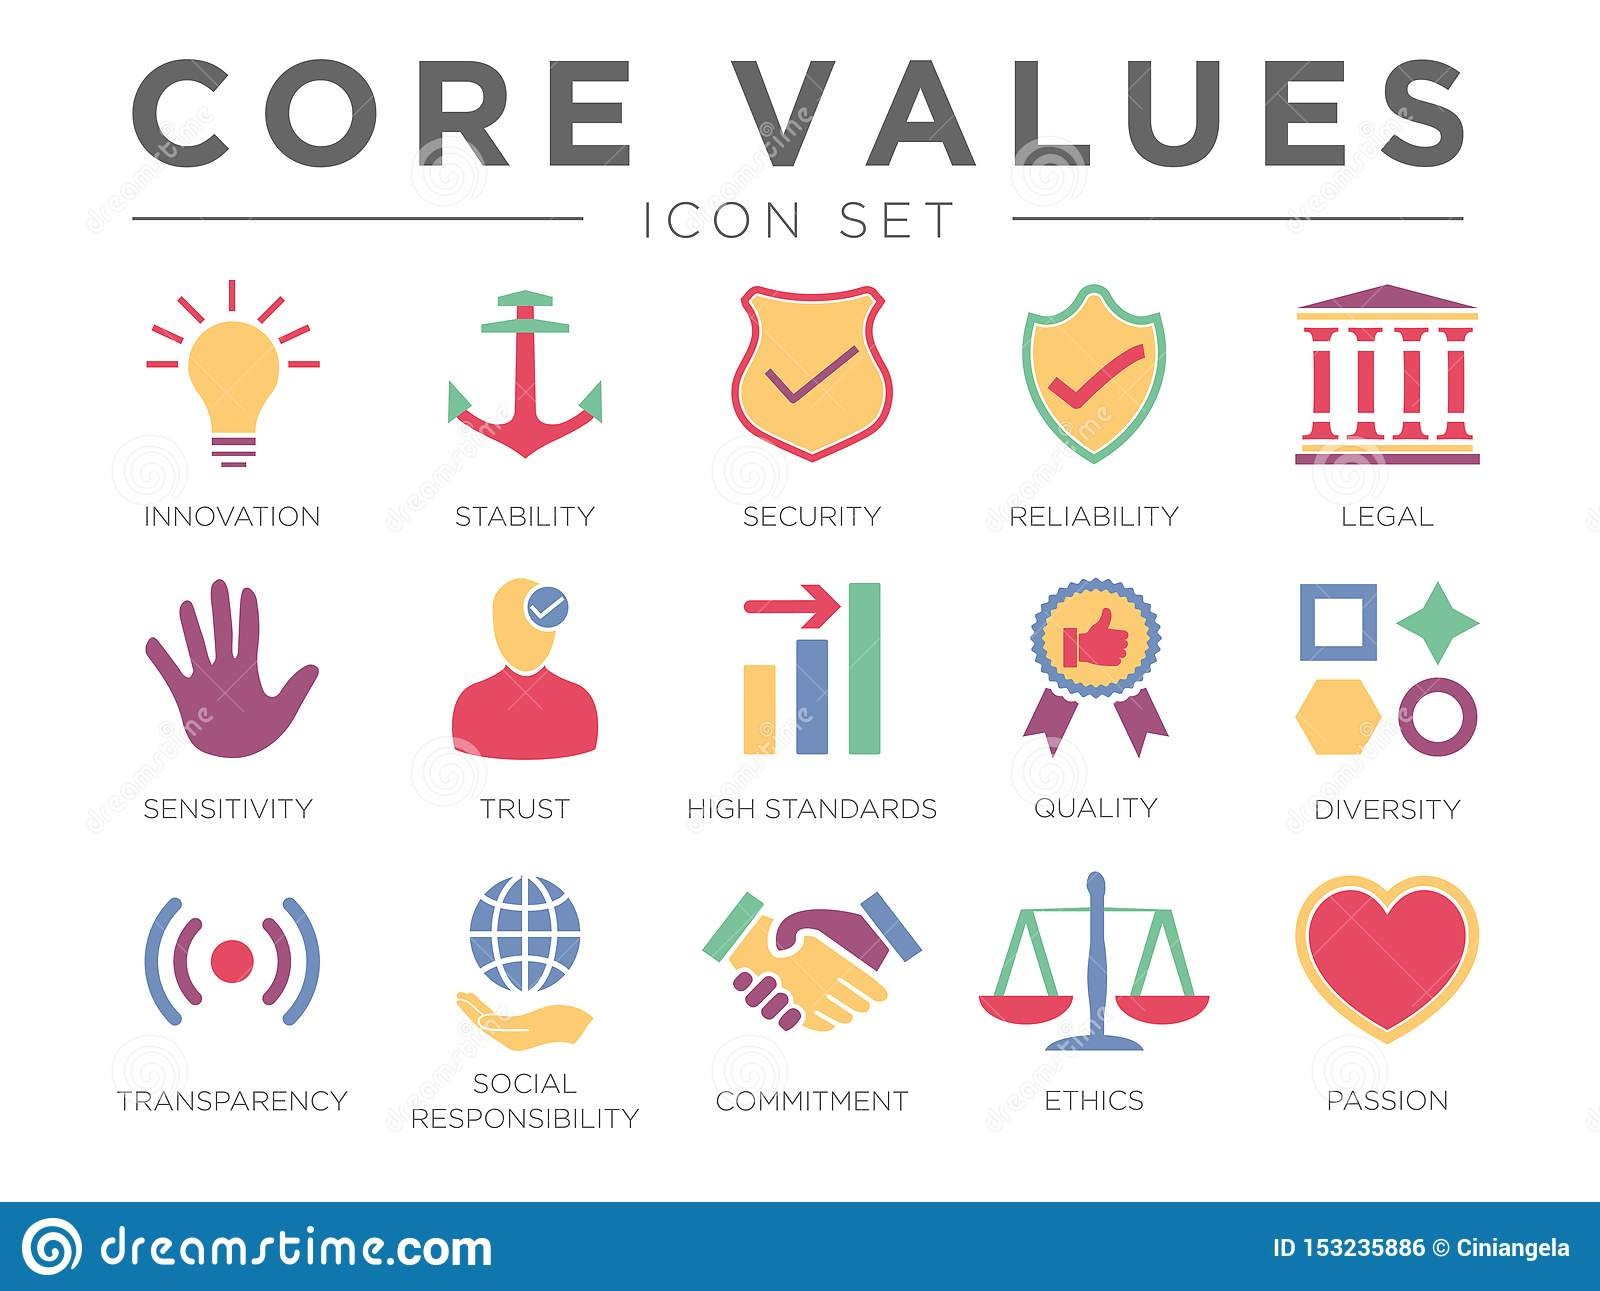 Business Company Core Values Color Icon Set. Innovation, Stability, Security, Reliability, Legal, Sensitivity, Trust, Standard,